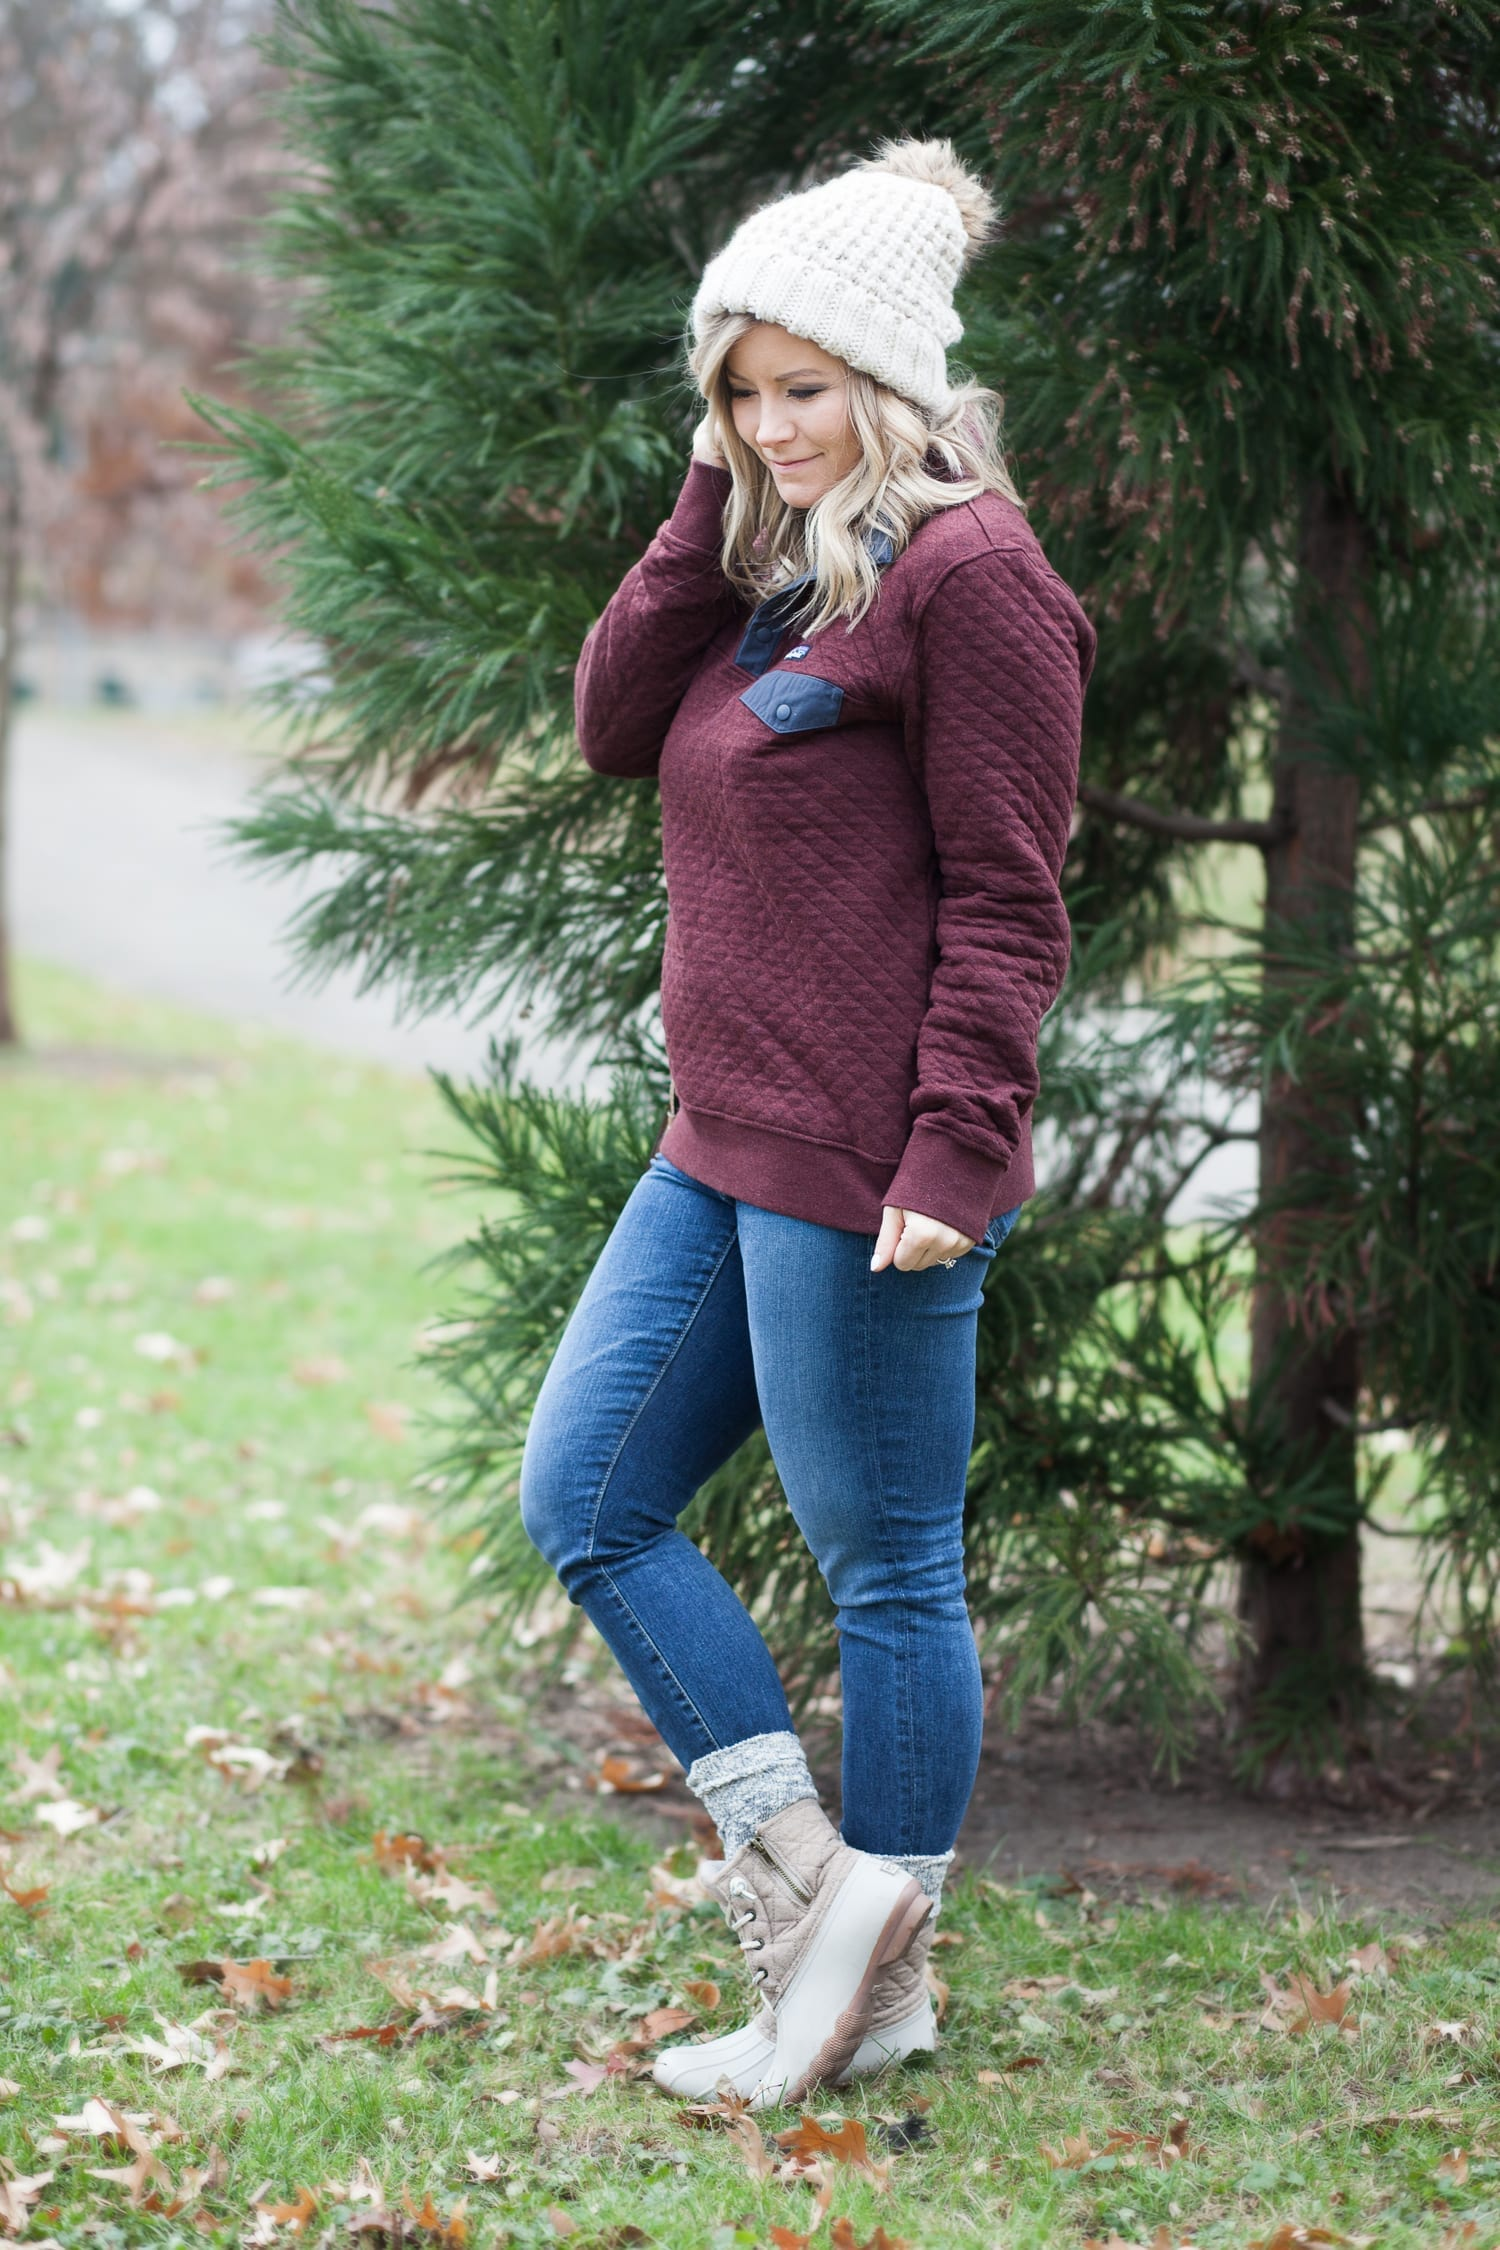 Festive Holiday Pullover + Day 9 of Giveaways with Vera Bradley